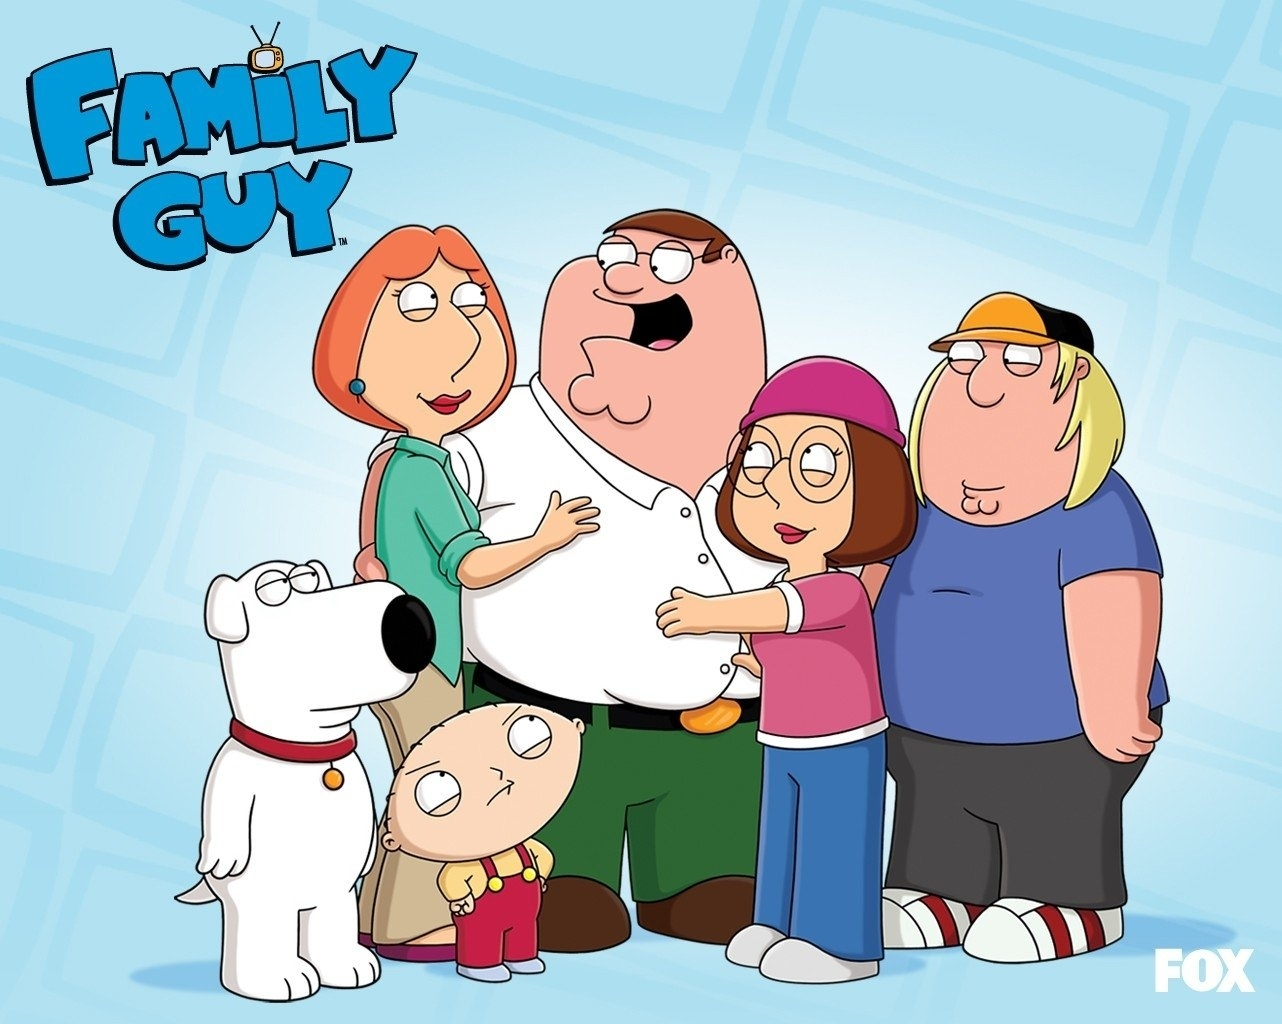 10 Best Family Guy Wallpaper Hd FULL HD 1920×1080 For PC Desktop